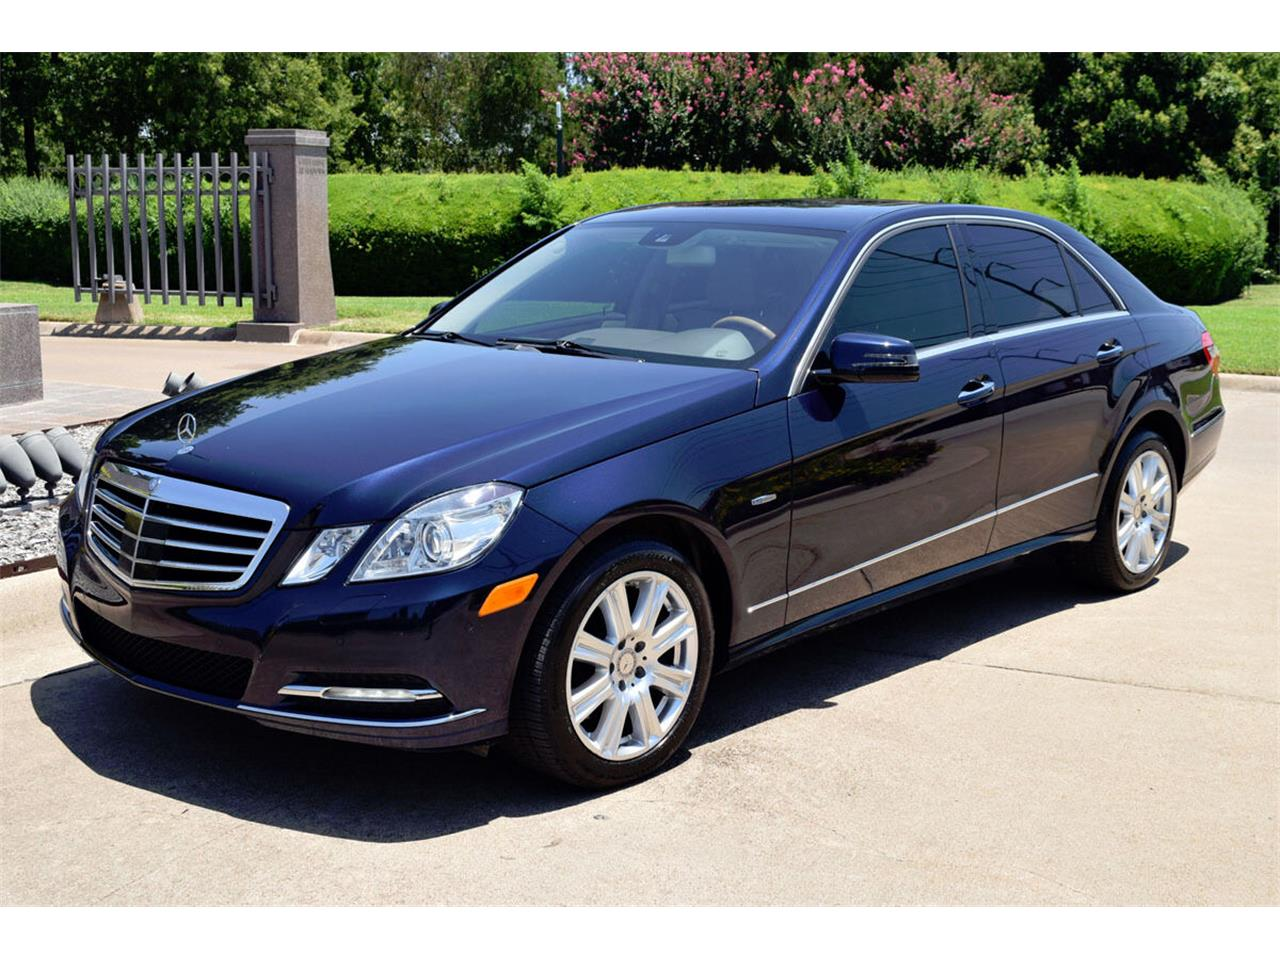 2012 Mercedes-Benz E-Class (CC-1364316) for sale in Fort Worth, Texas